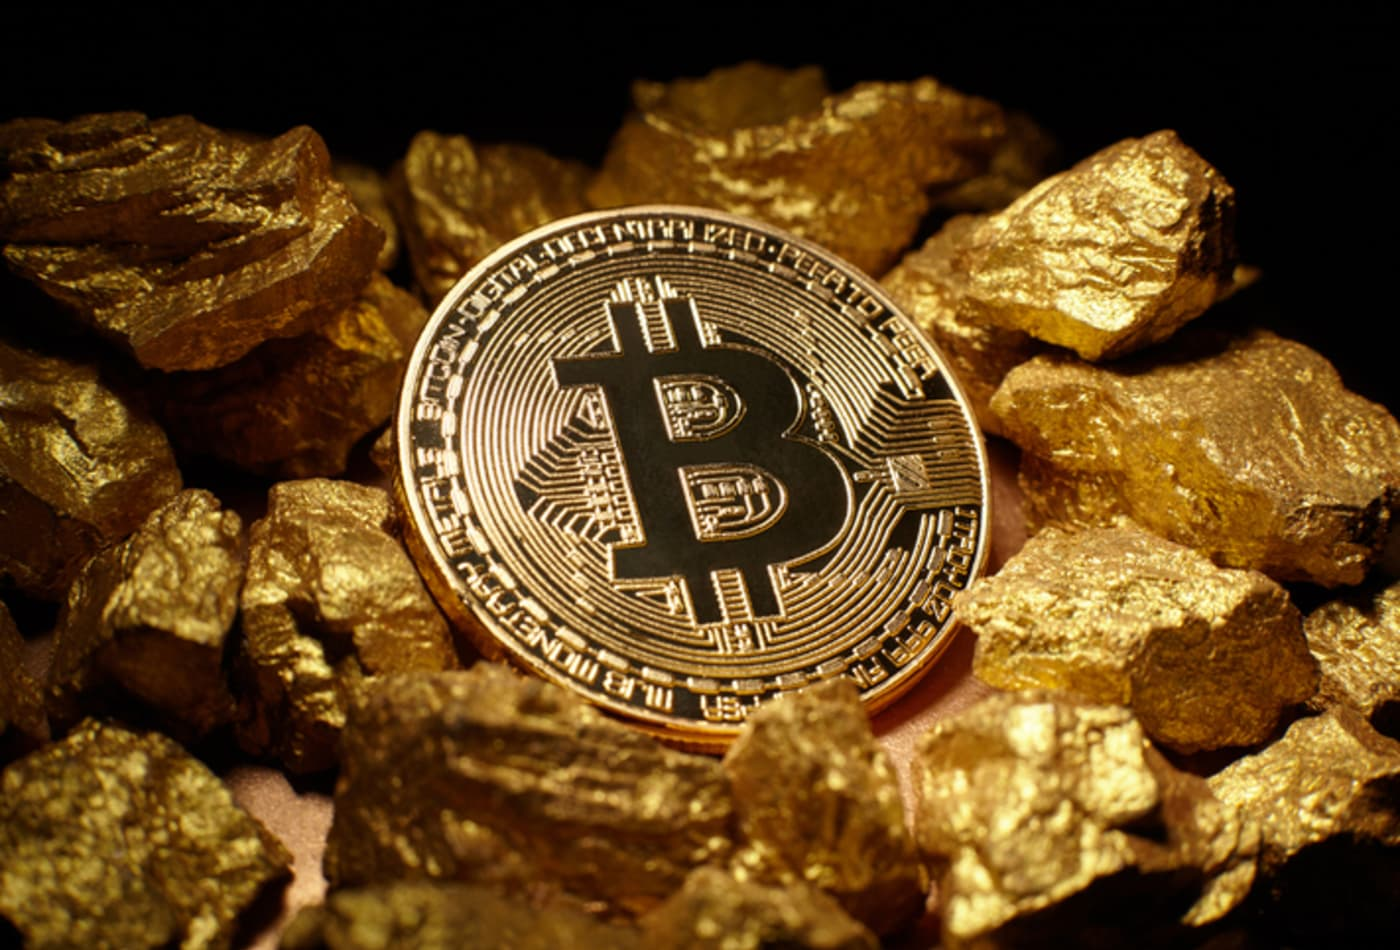 JPMorgan says bitcoin could rise to $146,000 long term as it competes with gold